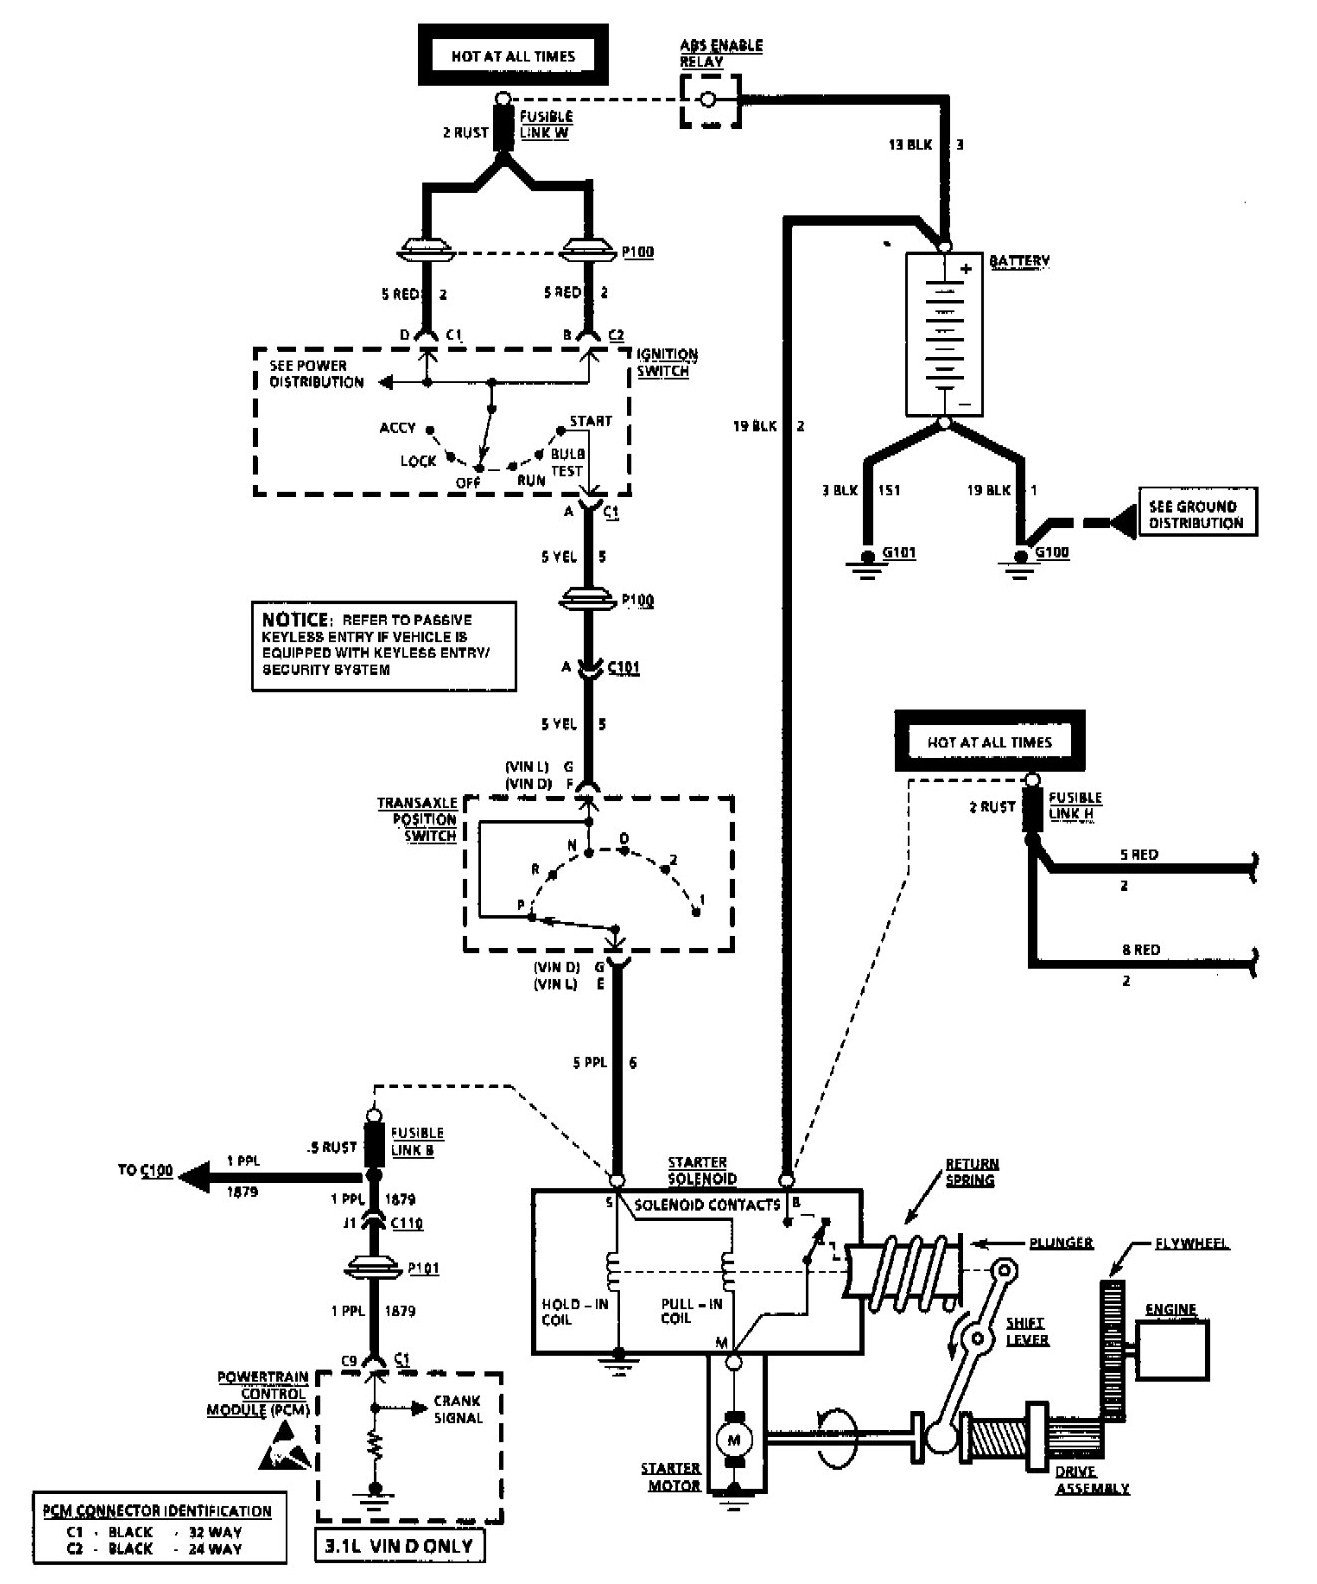 similiar 3800 series 2 diagram keywords 3800 series 2 engine diagram besides 3800 series 2 engine diagram on